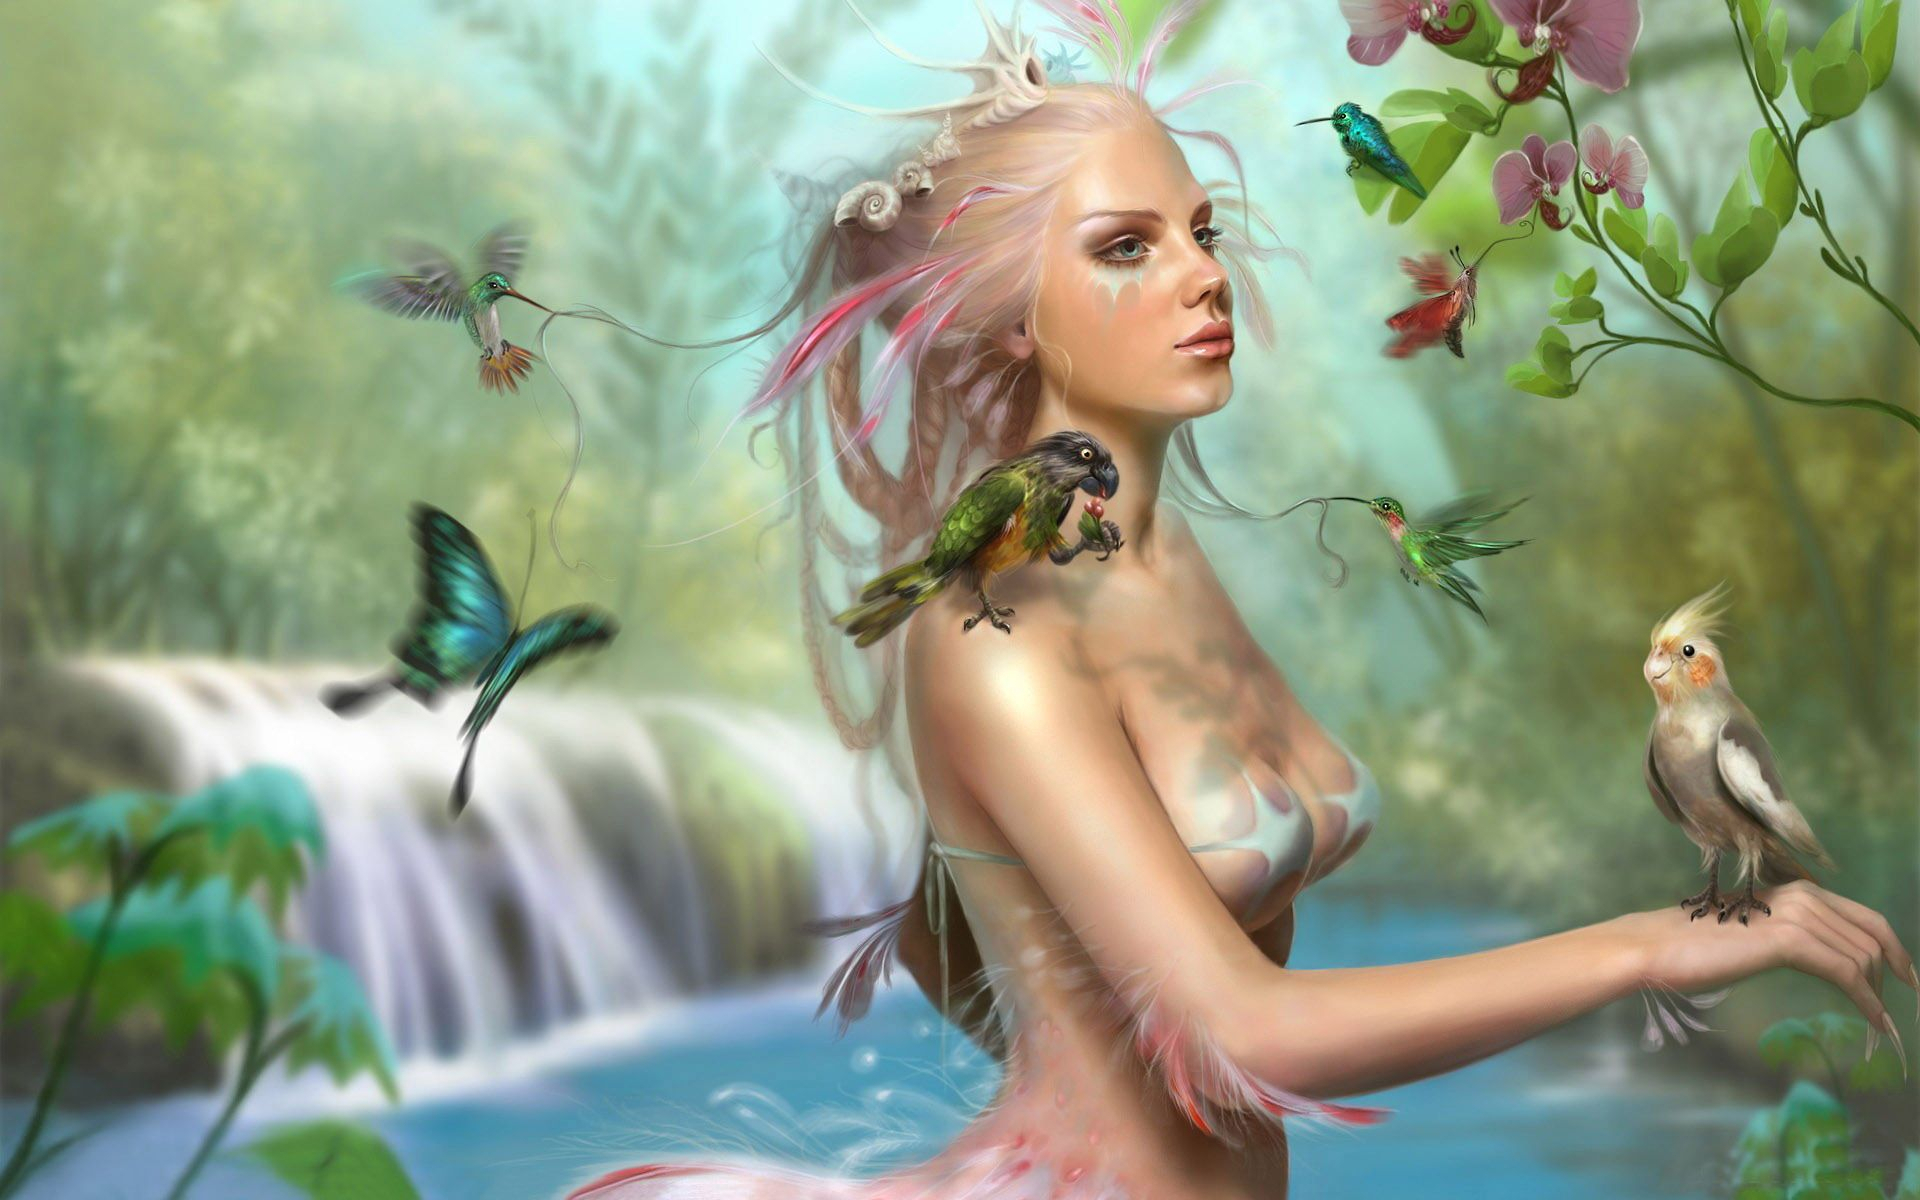 Fantasy girl free desktop wallpapers for widescreen hd and mobile wallpaper voltagebd Images